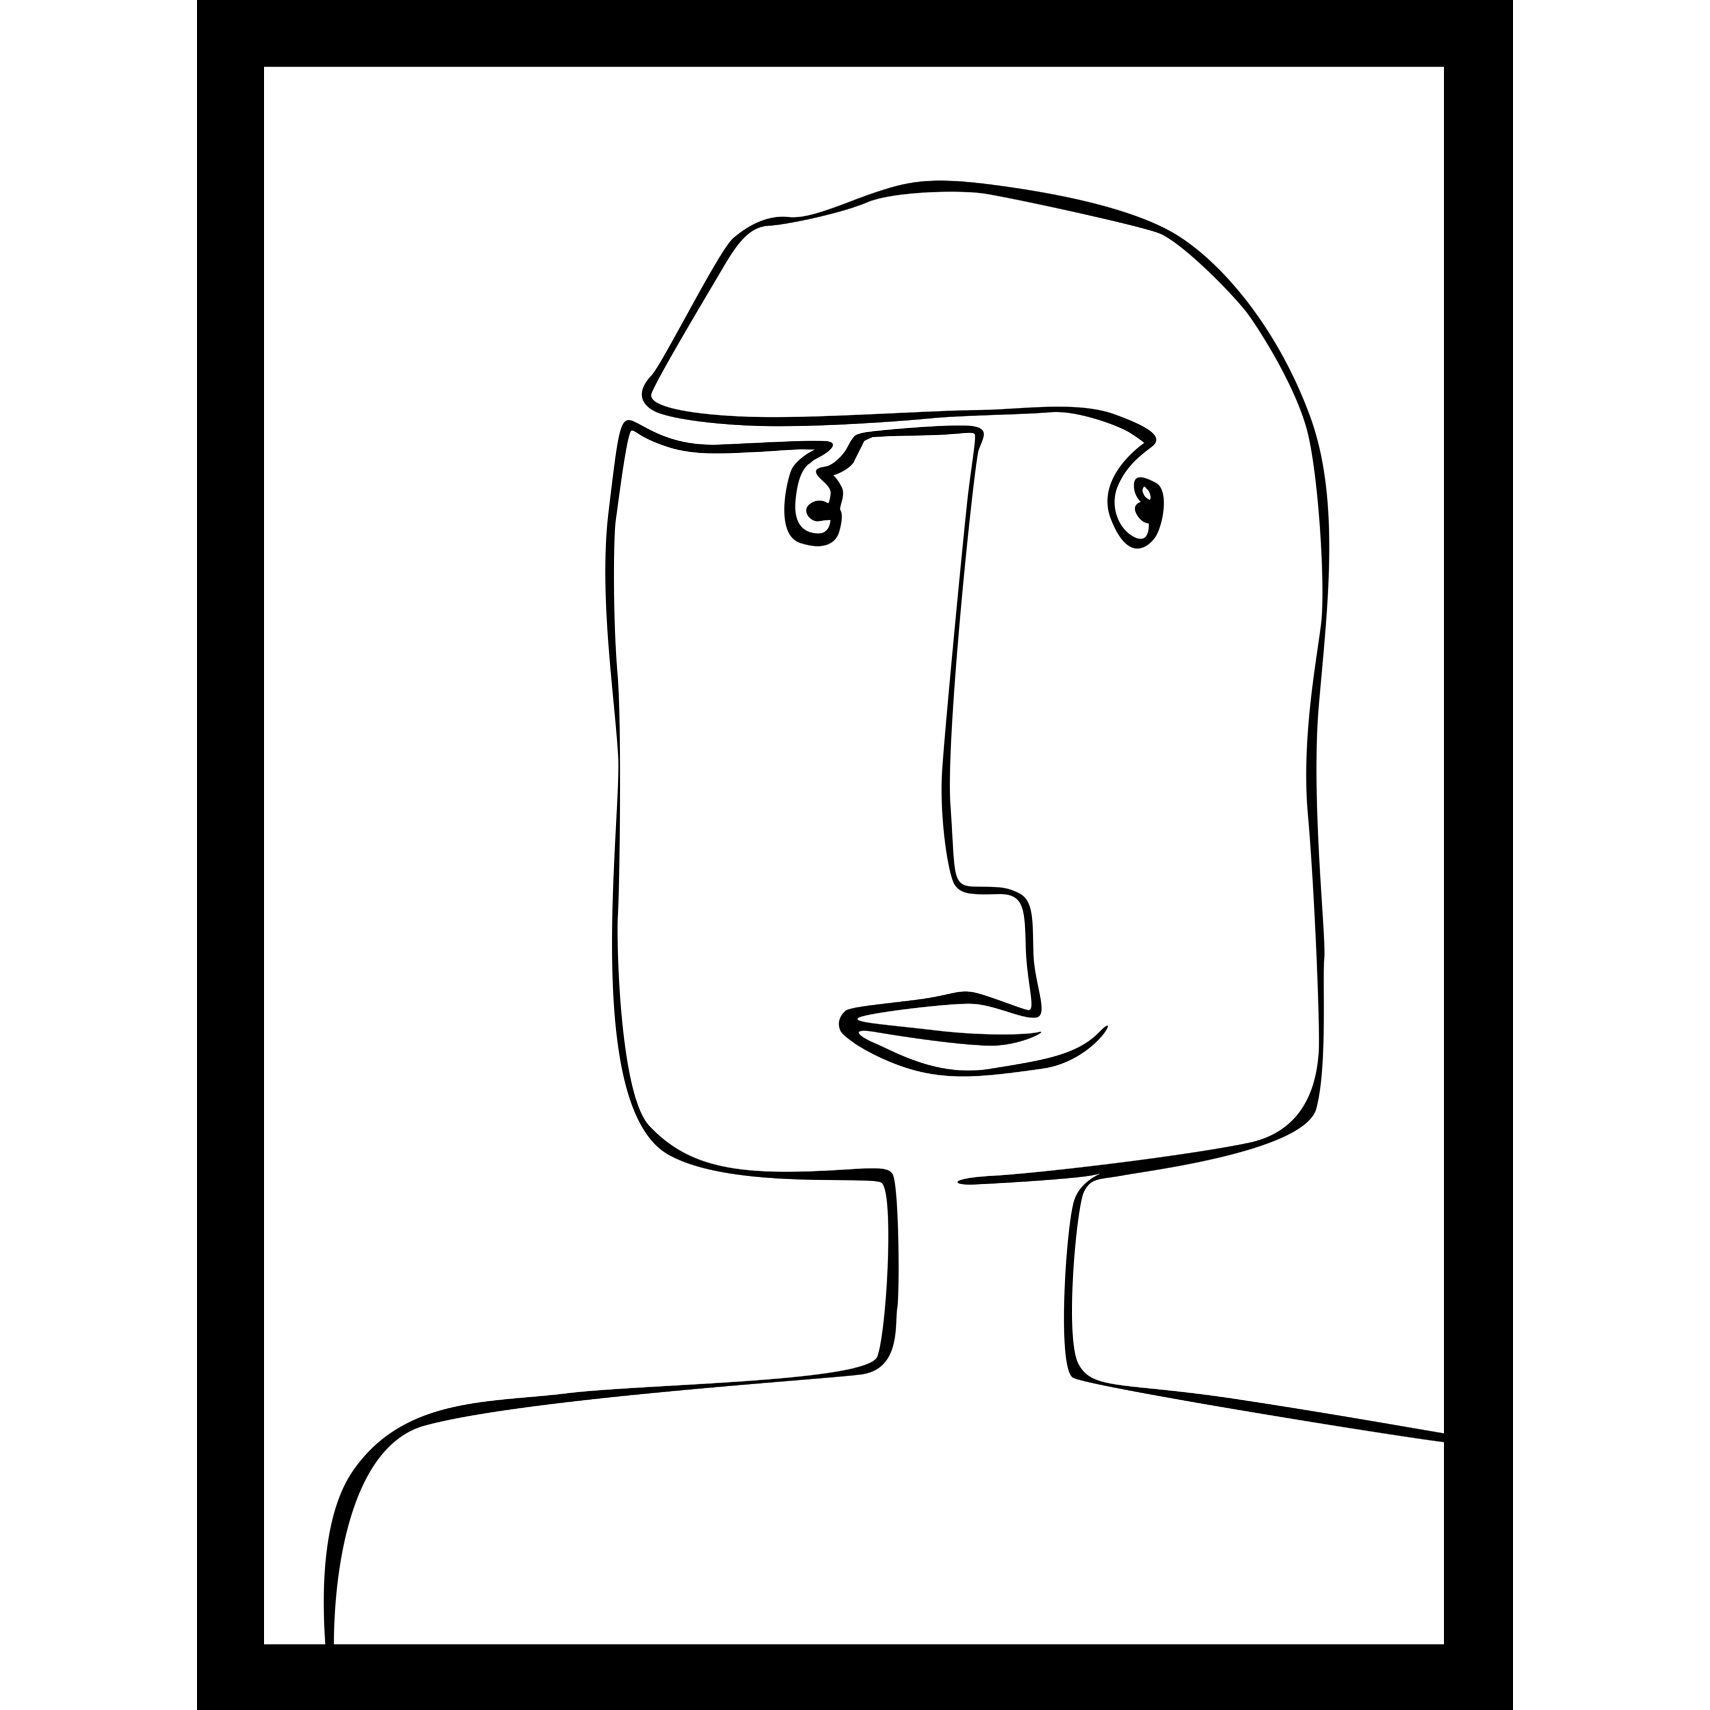 ART GALLERY Plakat 40 x 50 x 1,5 cm - One-line person I og ramme i 15 mm sort fyrretræ